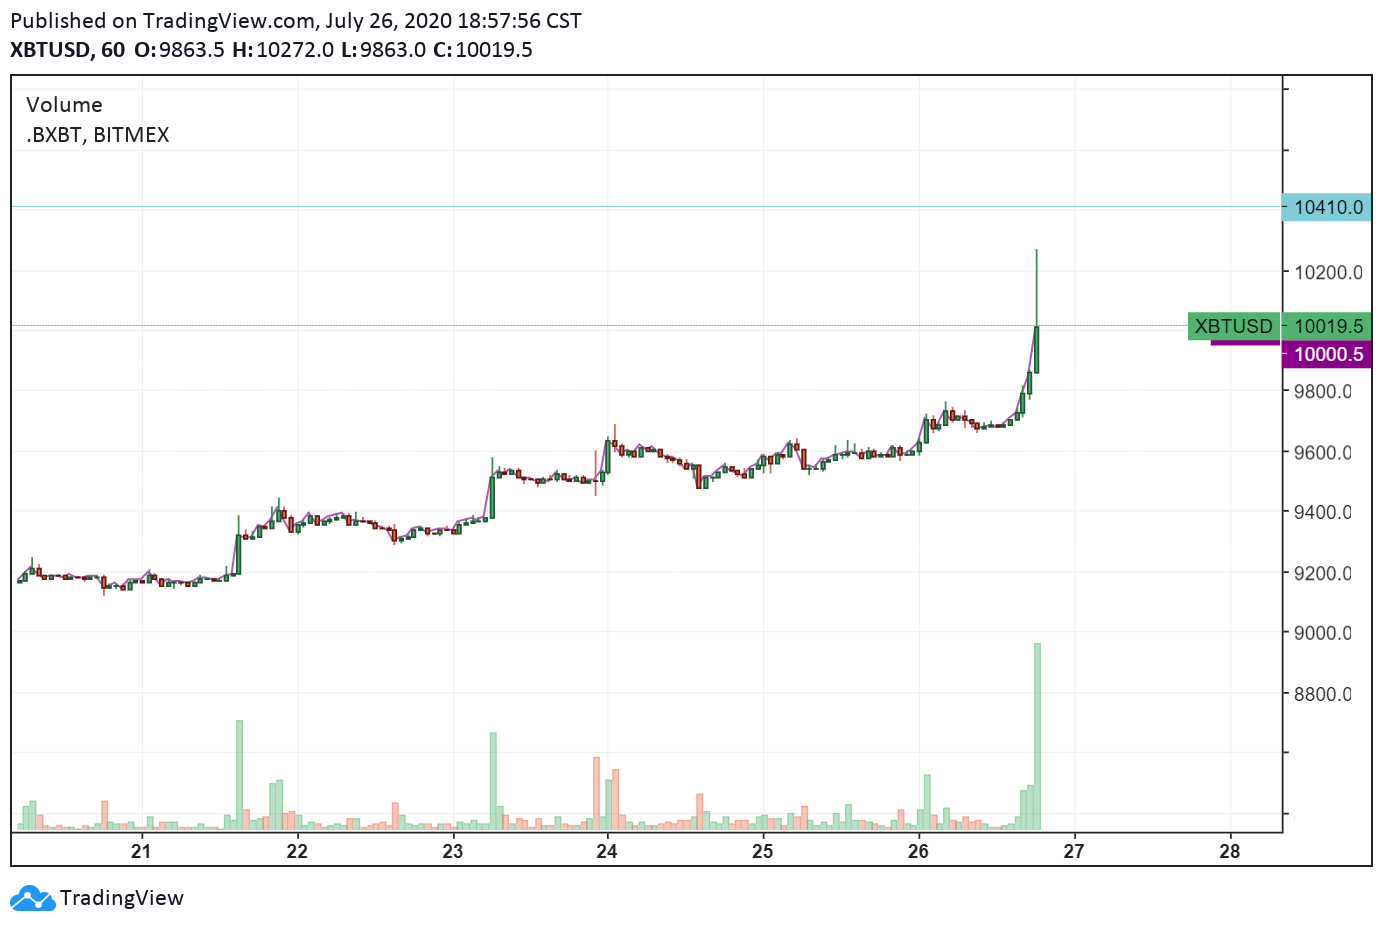 The hourly price chart of Bitcoin